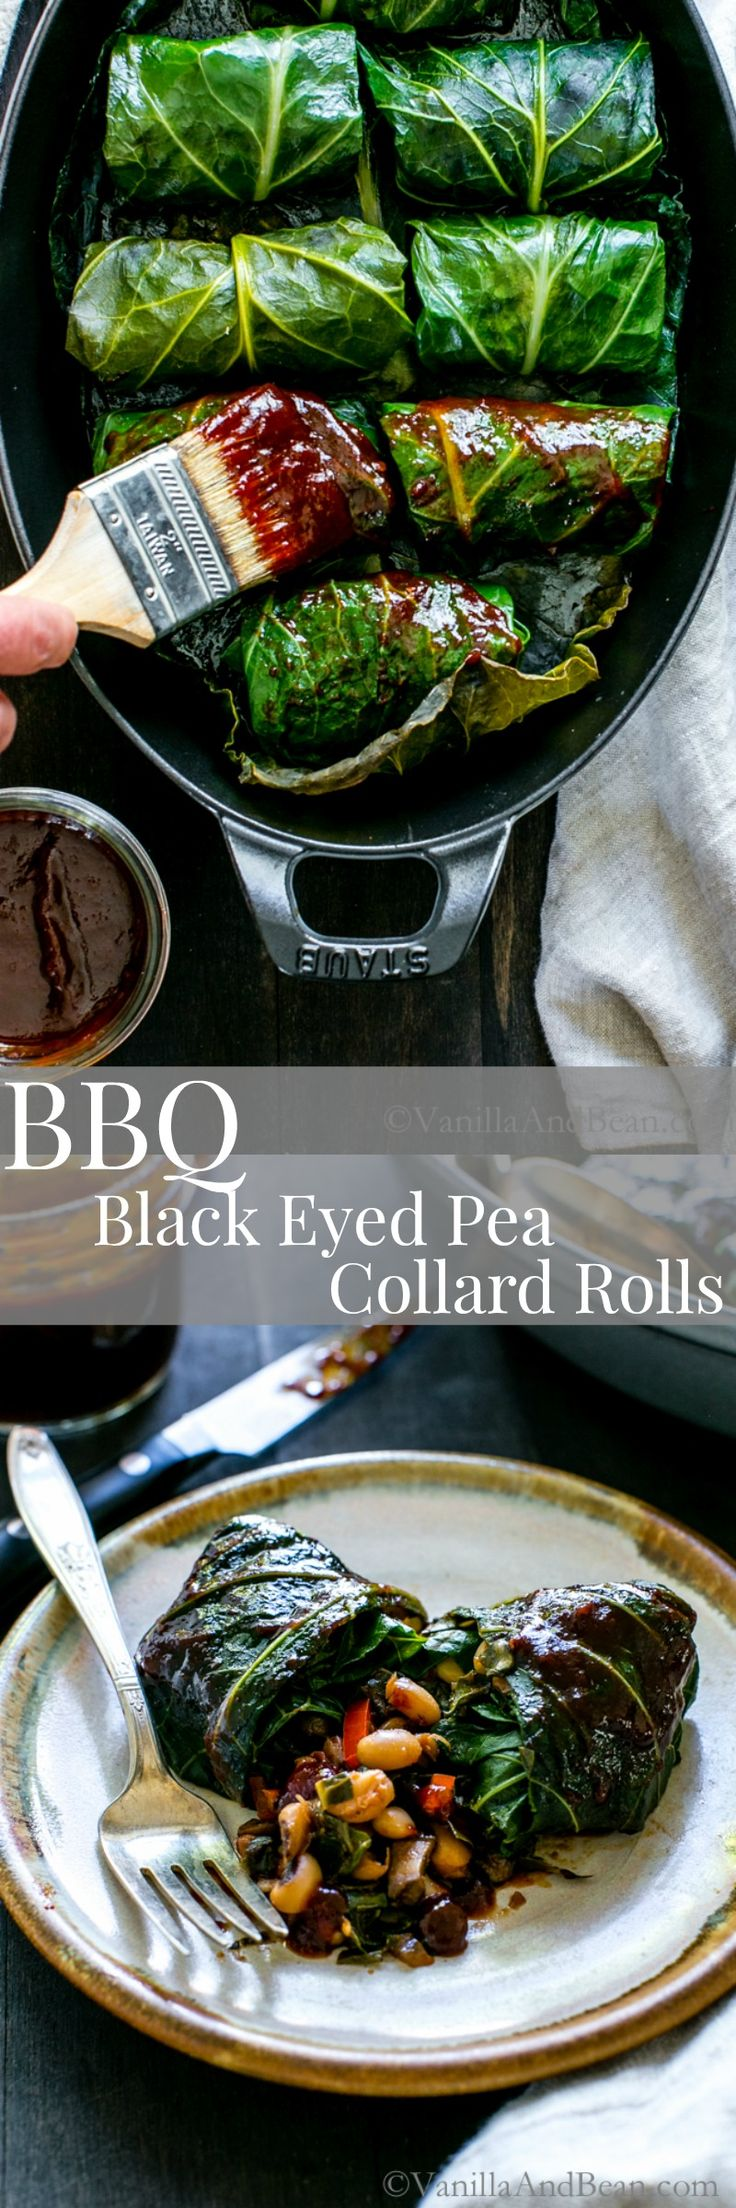 Tangy, hearty and pure comfort food! BBQ Black Eyed Pea Collard Rolls | Vegan, Gluten Free, Vegetarian, Recipe